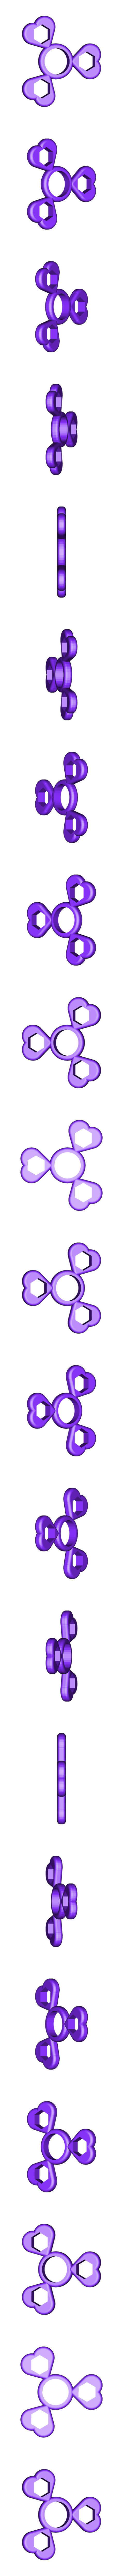 heart-hex-gen-3x-38-2.5r.stl Download free STL file I Corazón <3 Valentine adaptable (pick-a-weight) Fidget Spinner • Object to 3D print, Lucina